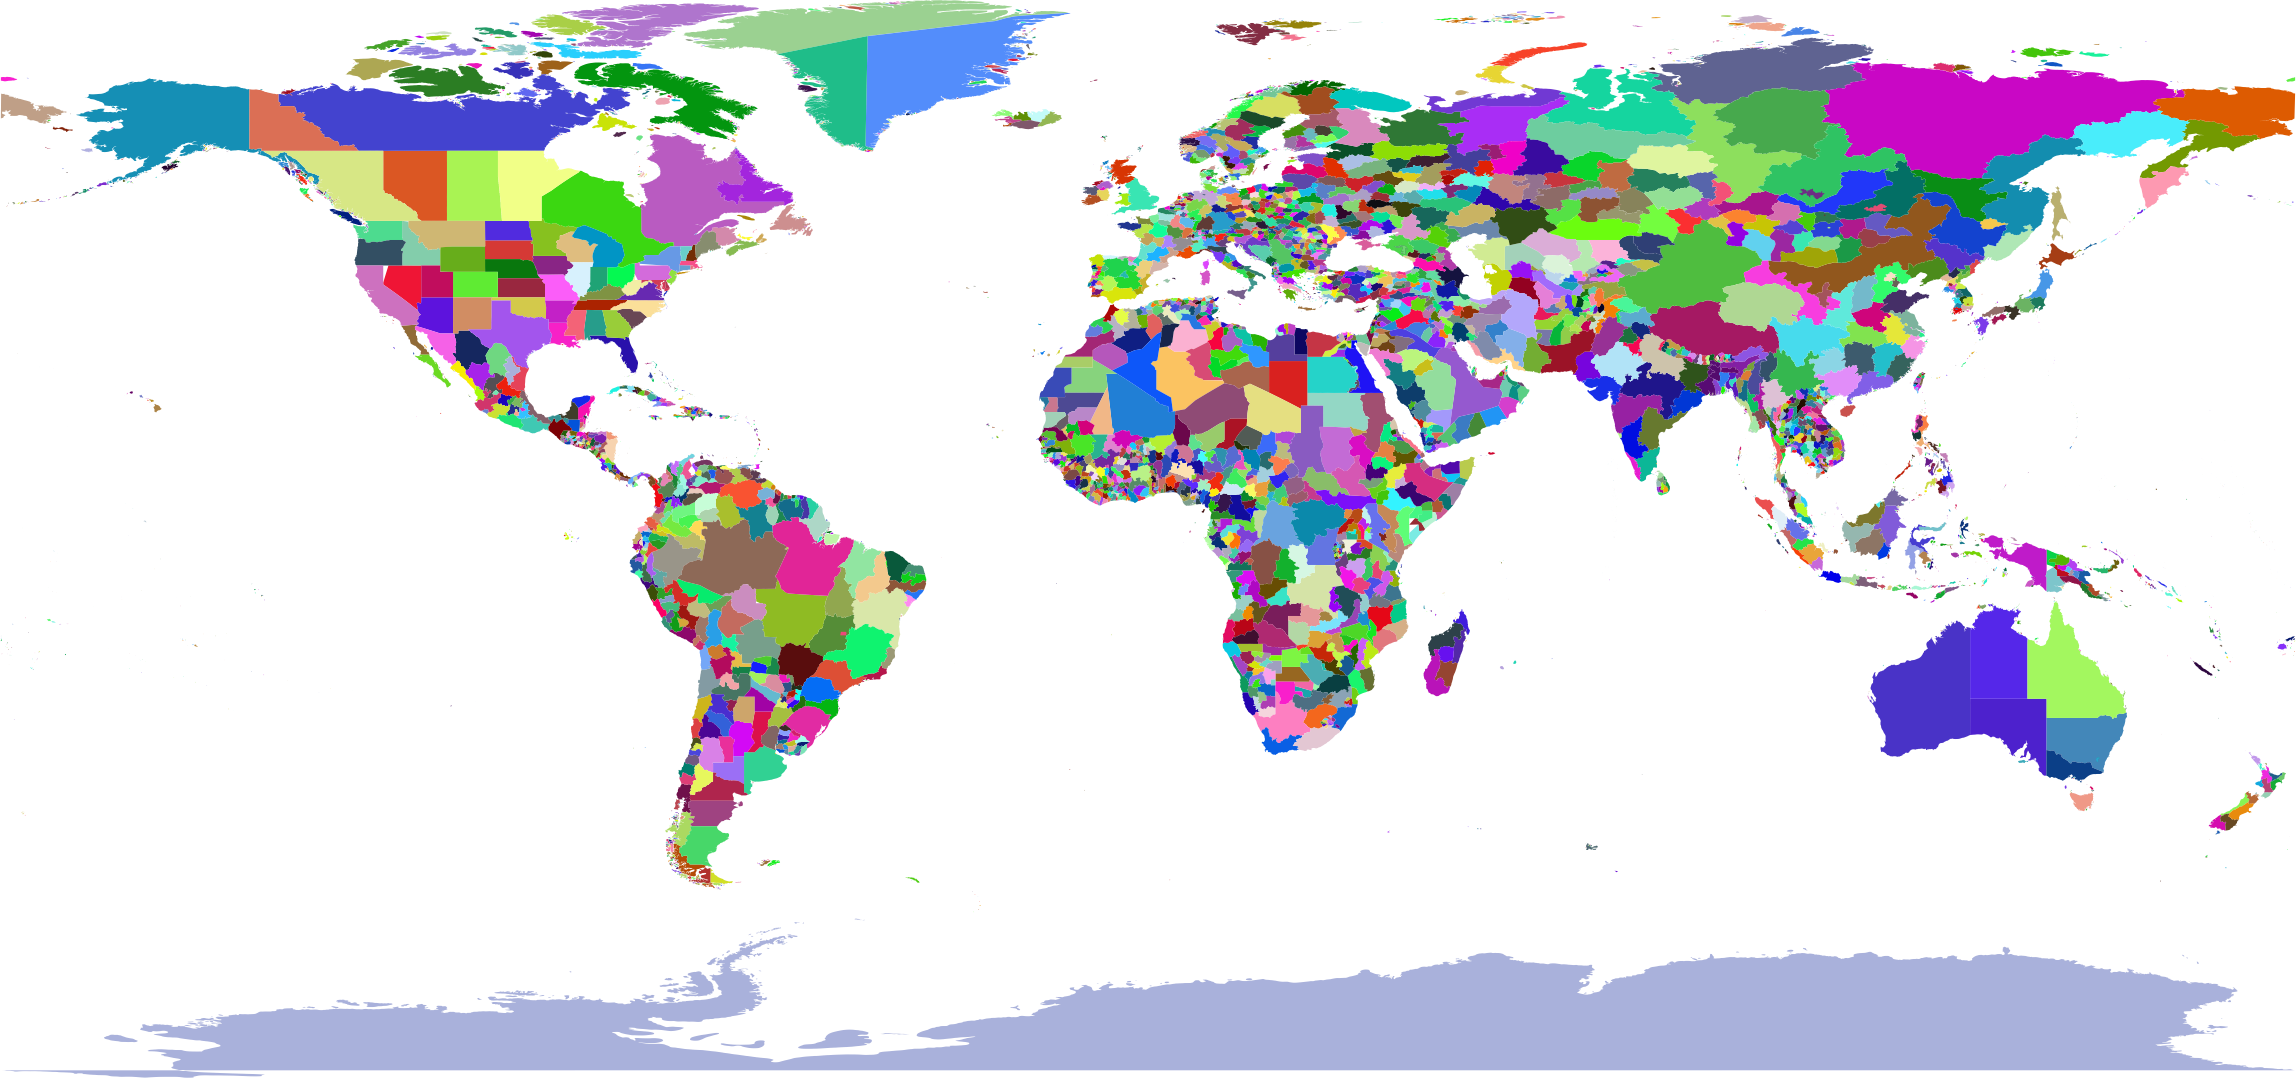 Colorful World Map by GDJ